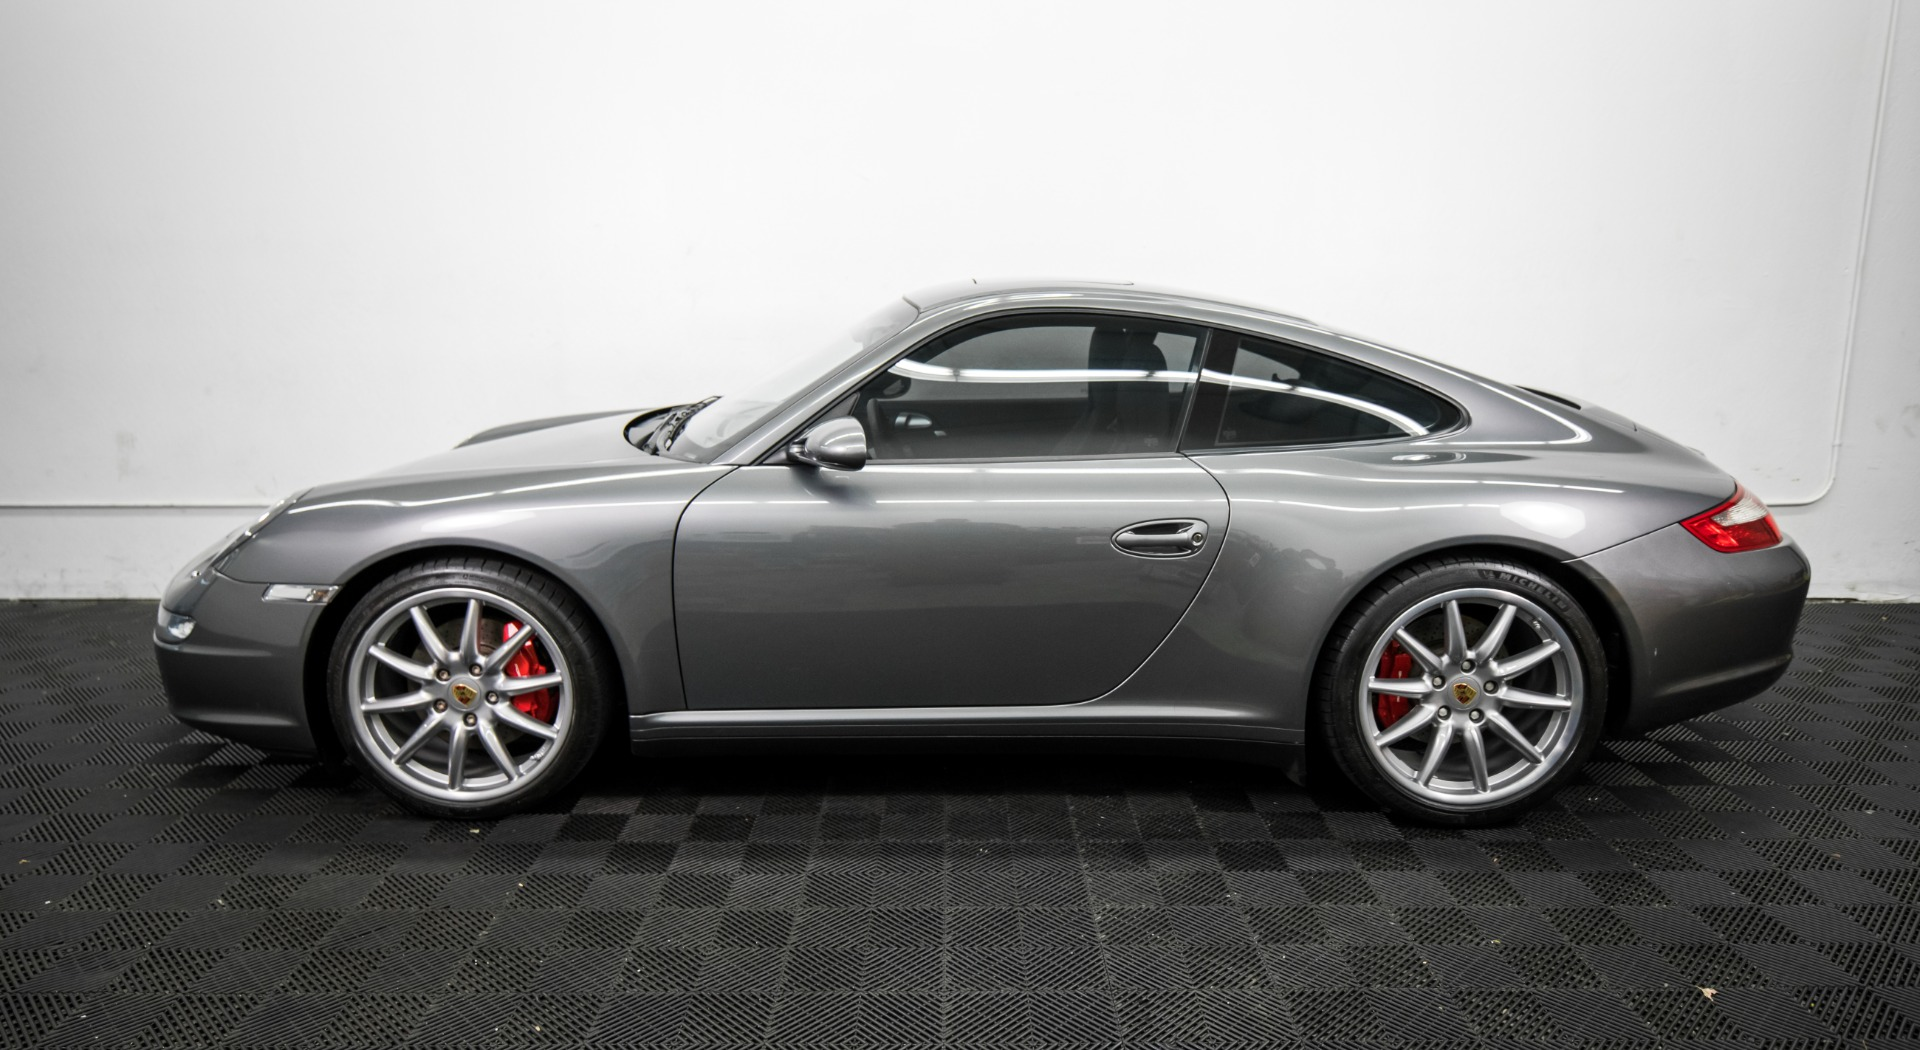 Used 2008 Porsche 911 Carrera 4S Used 2008 Porsche 911 Carrera 4S for sale $48,999 at Response Motors in Mountain View CA 9